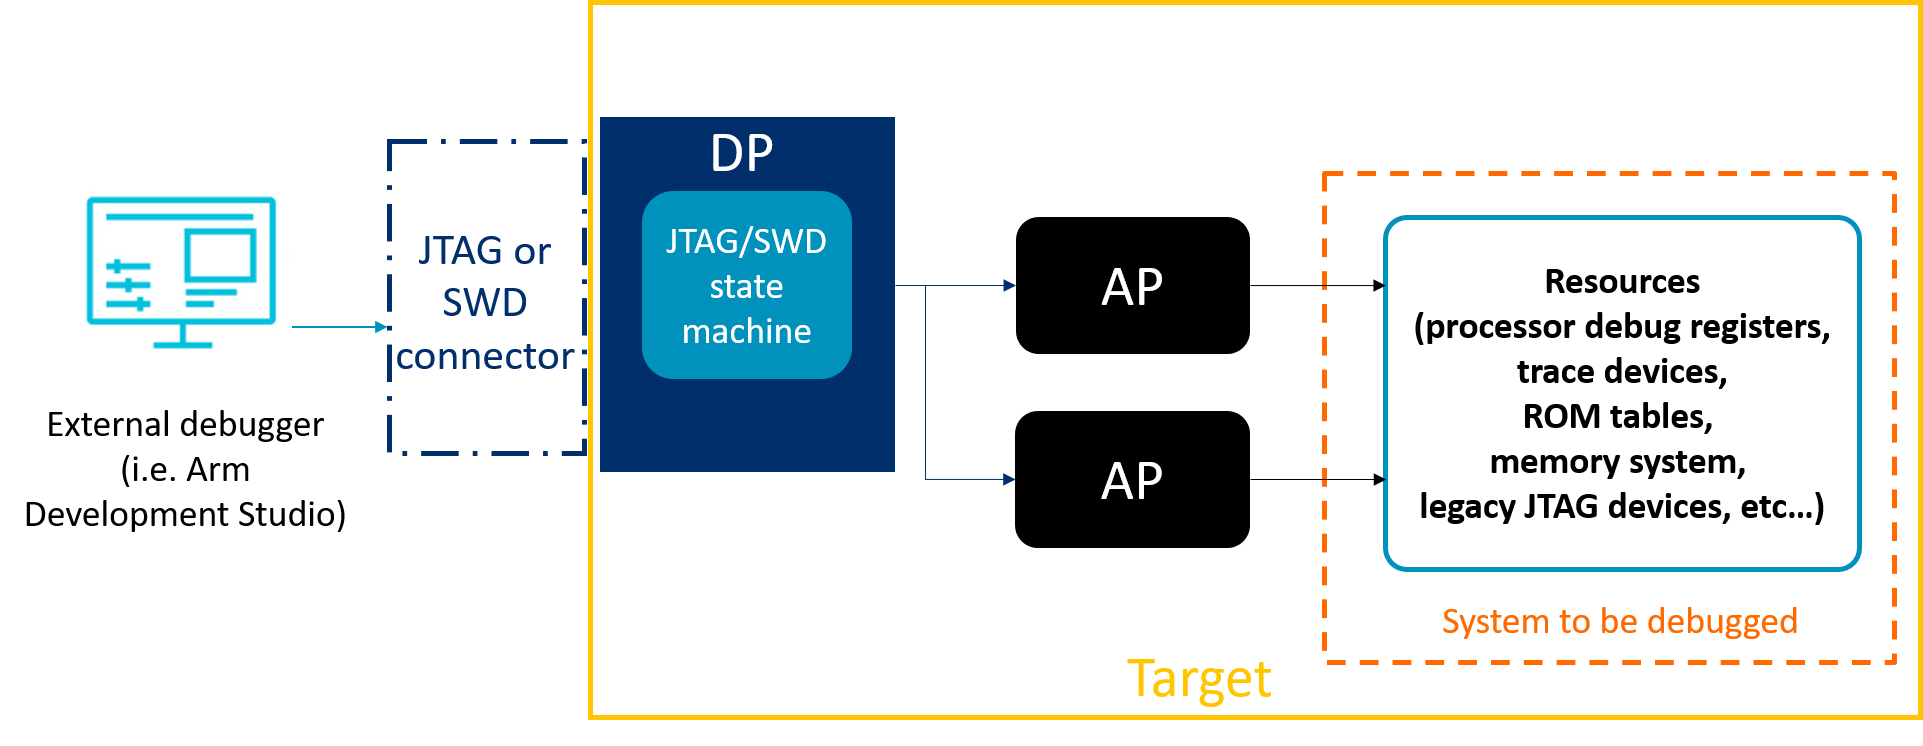 Diagram of an ADIv6 system for an external debug connection via JTAG or SWD